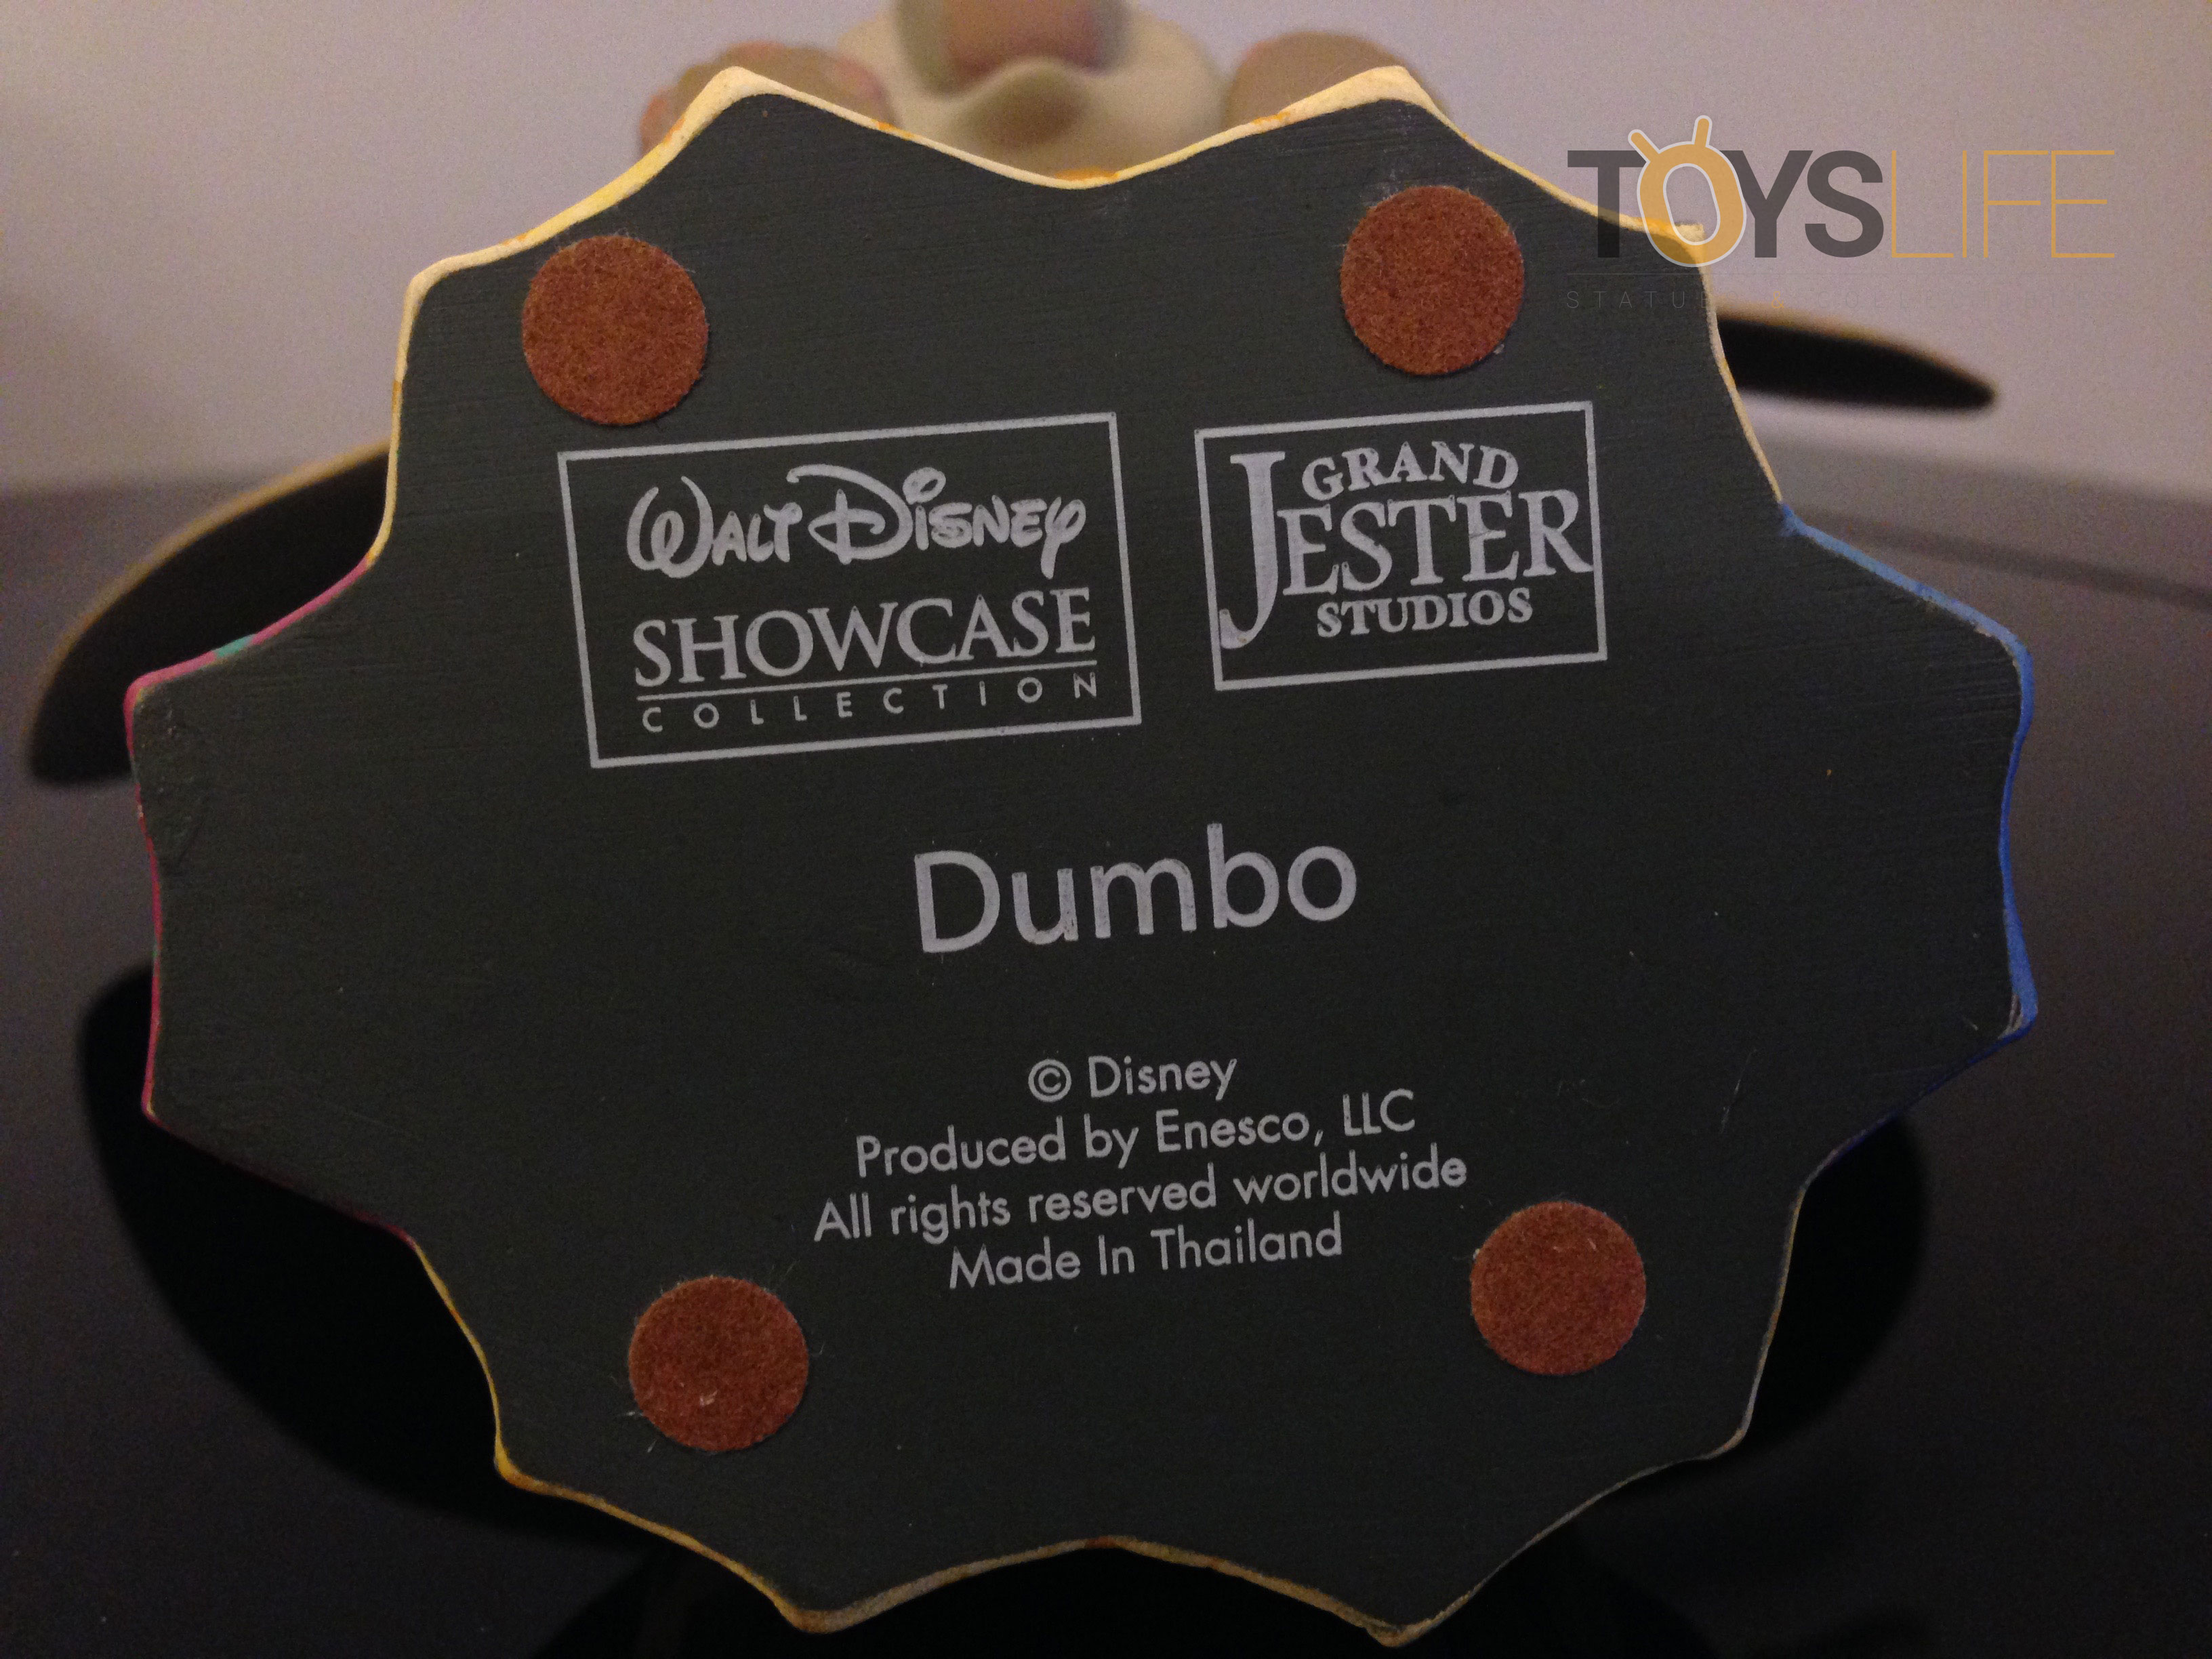 grand-jester-studios-dumbo-bust-toyslife-review-06